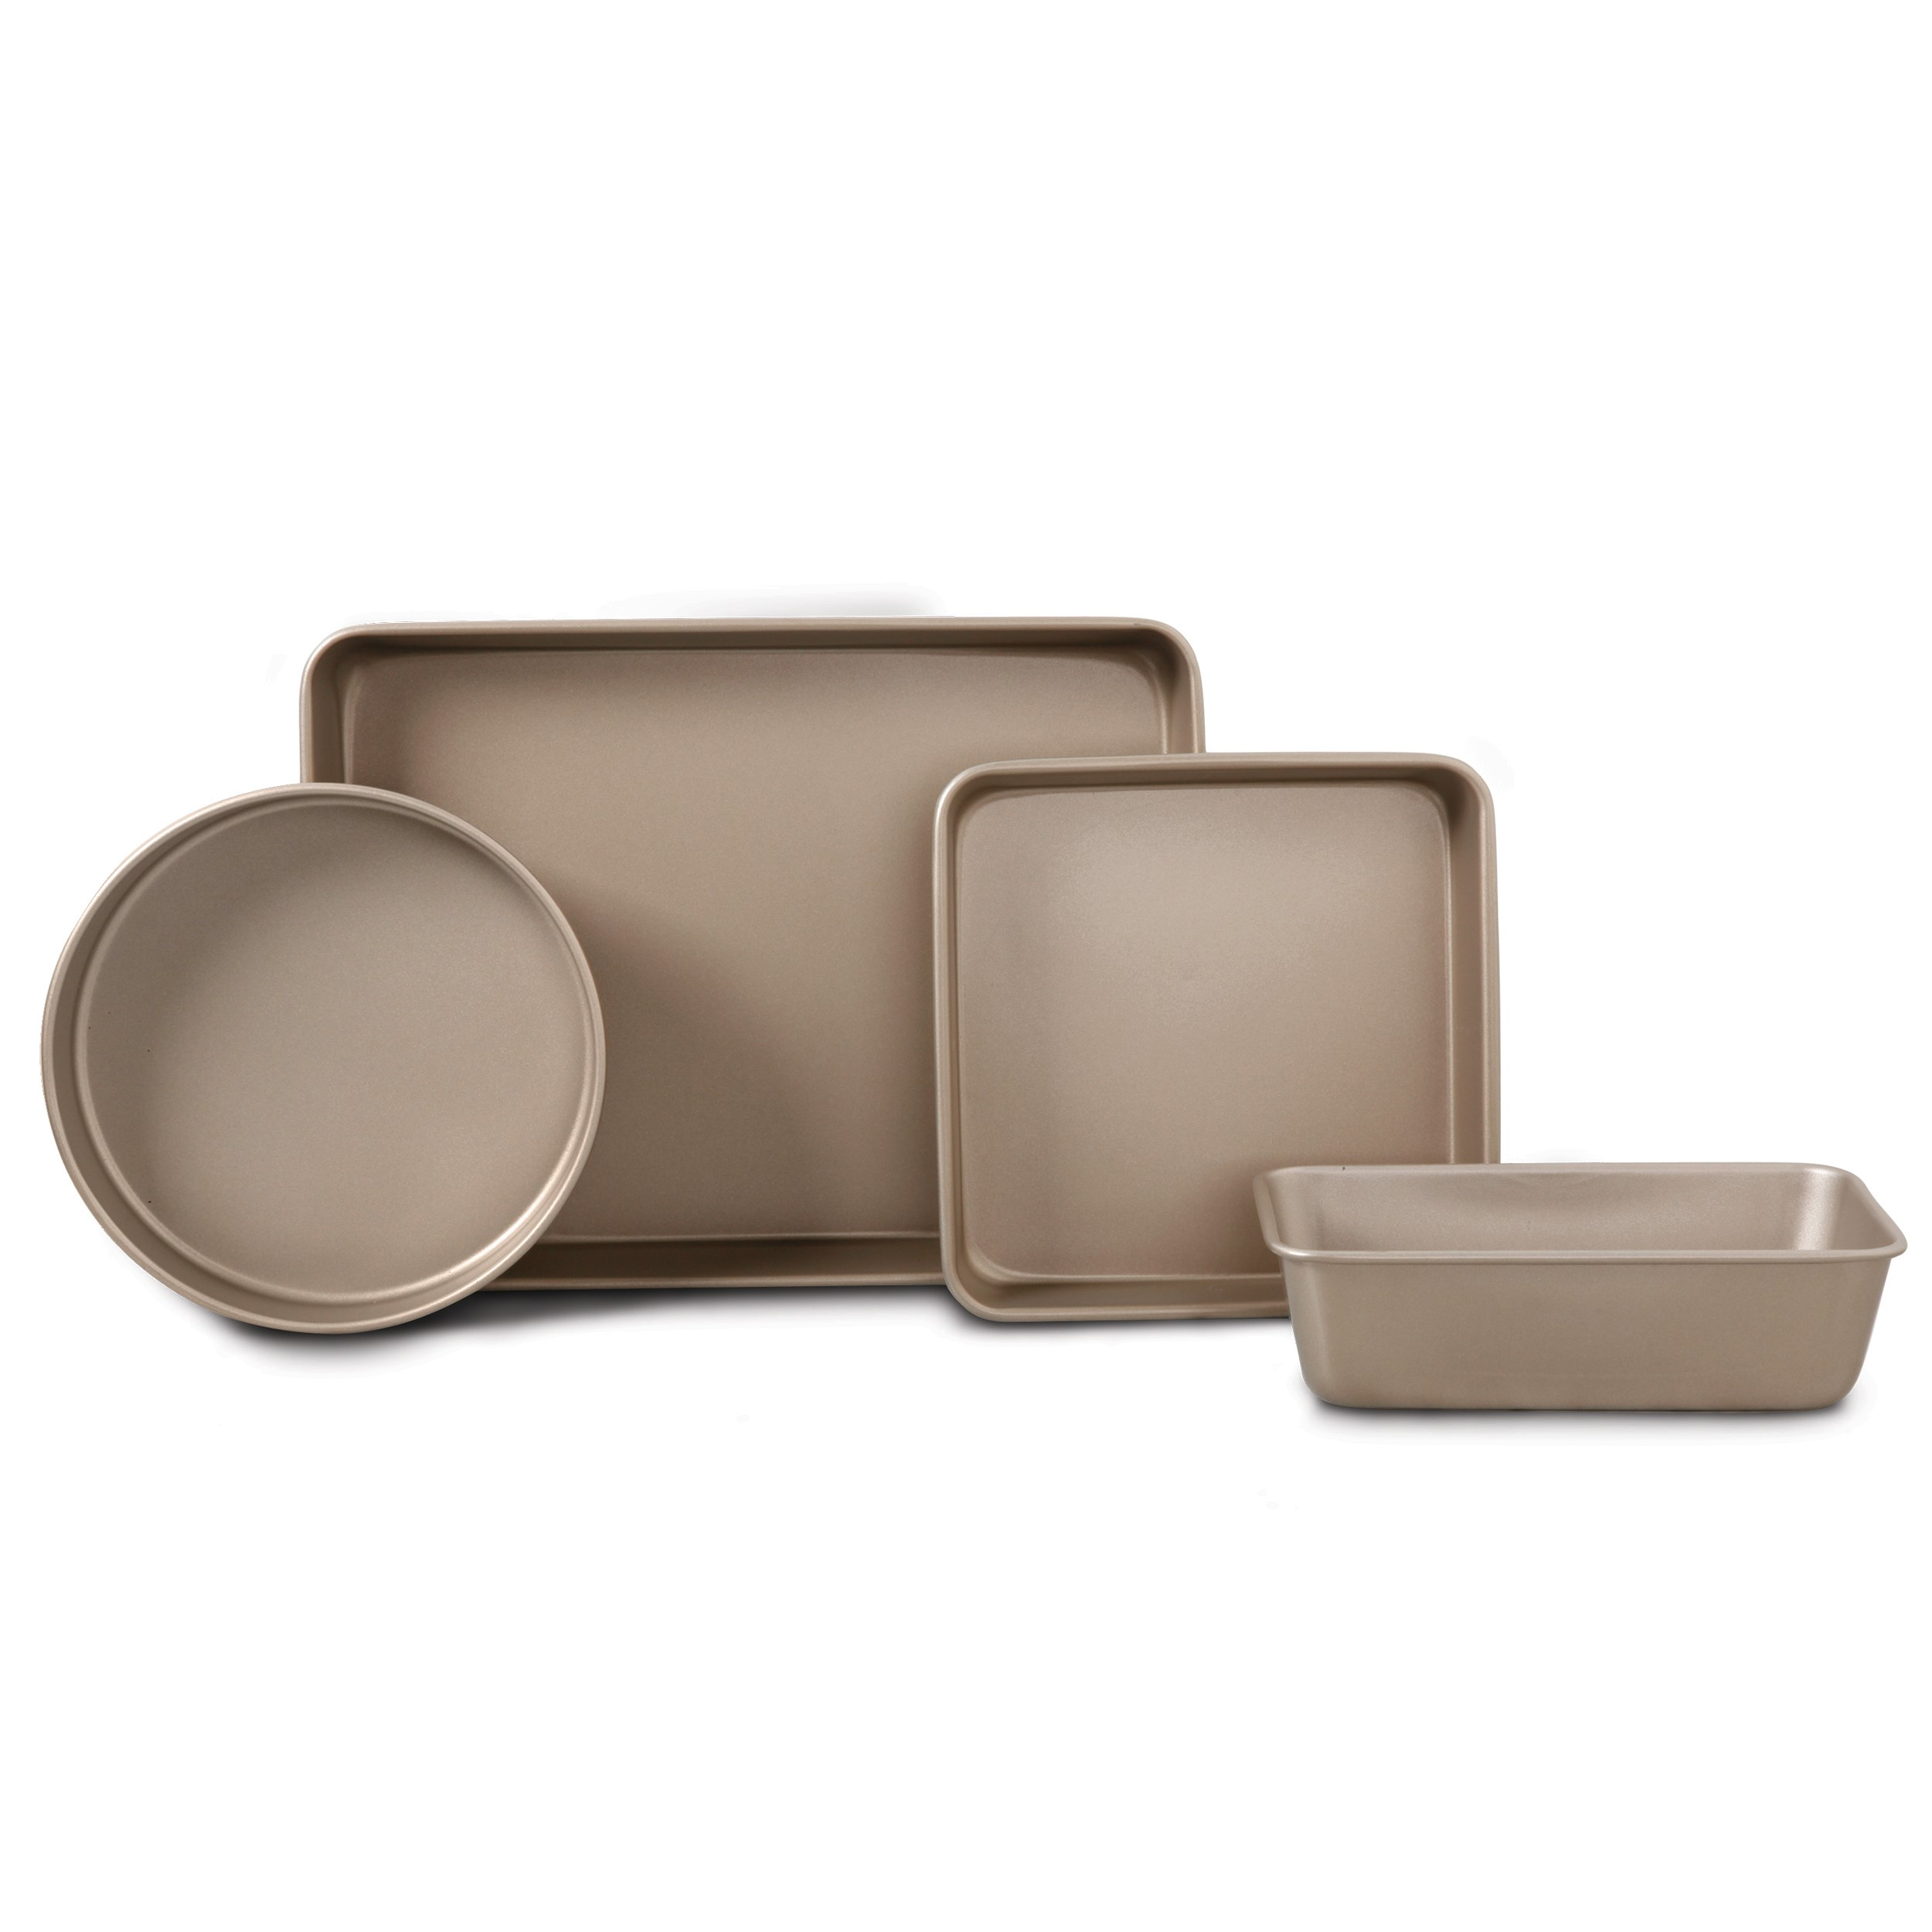 Oster Gale Bakeware Set (4 Pieces)